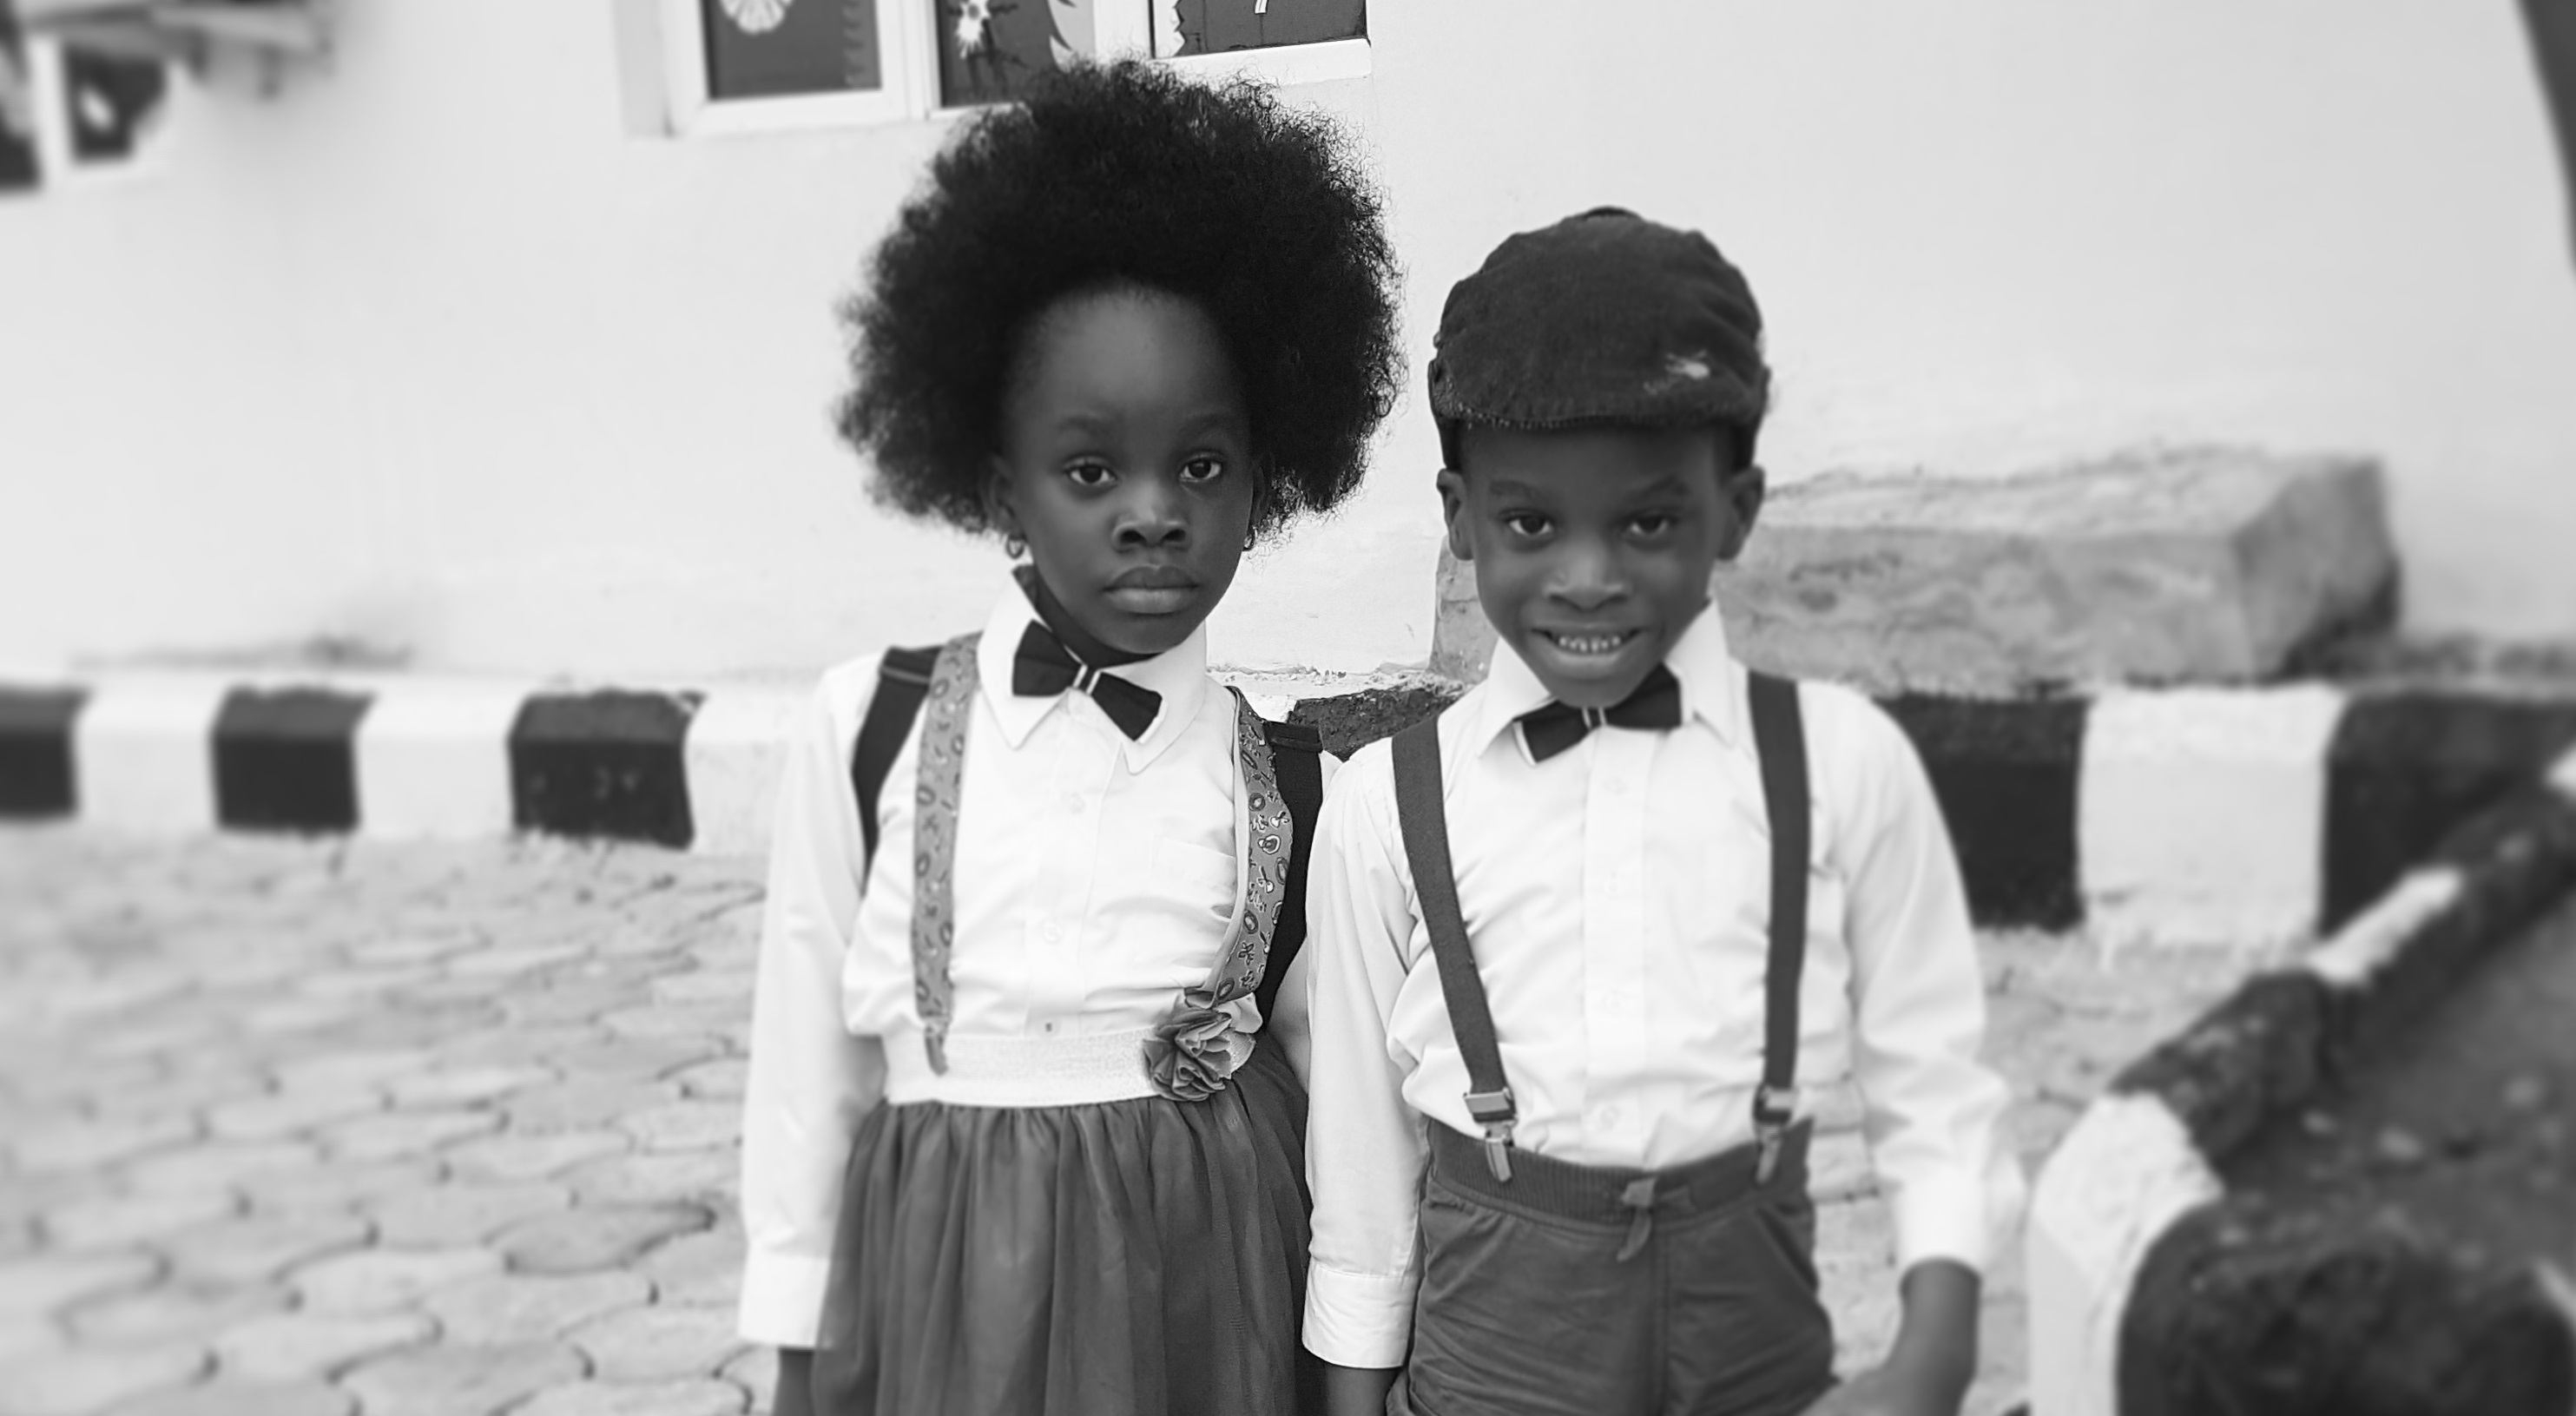 Beautiful pictures of a twin in their old school outfit